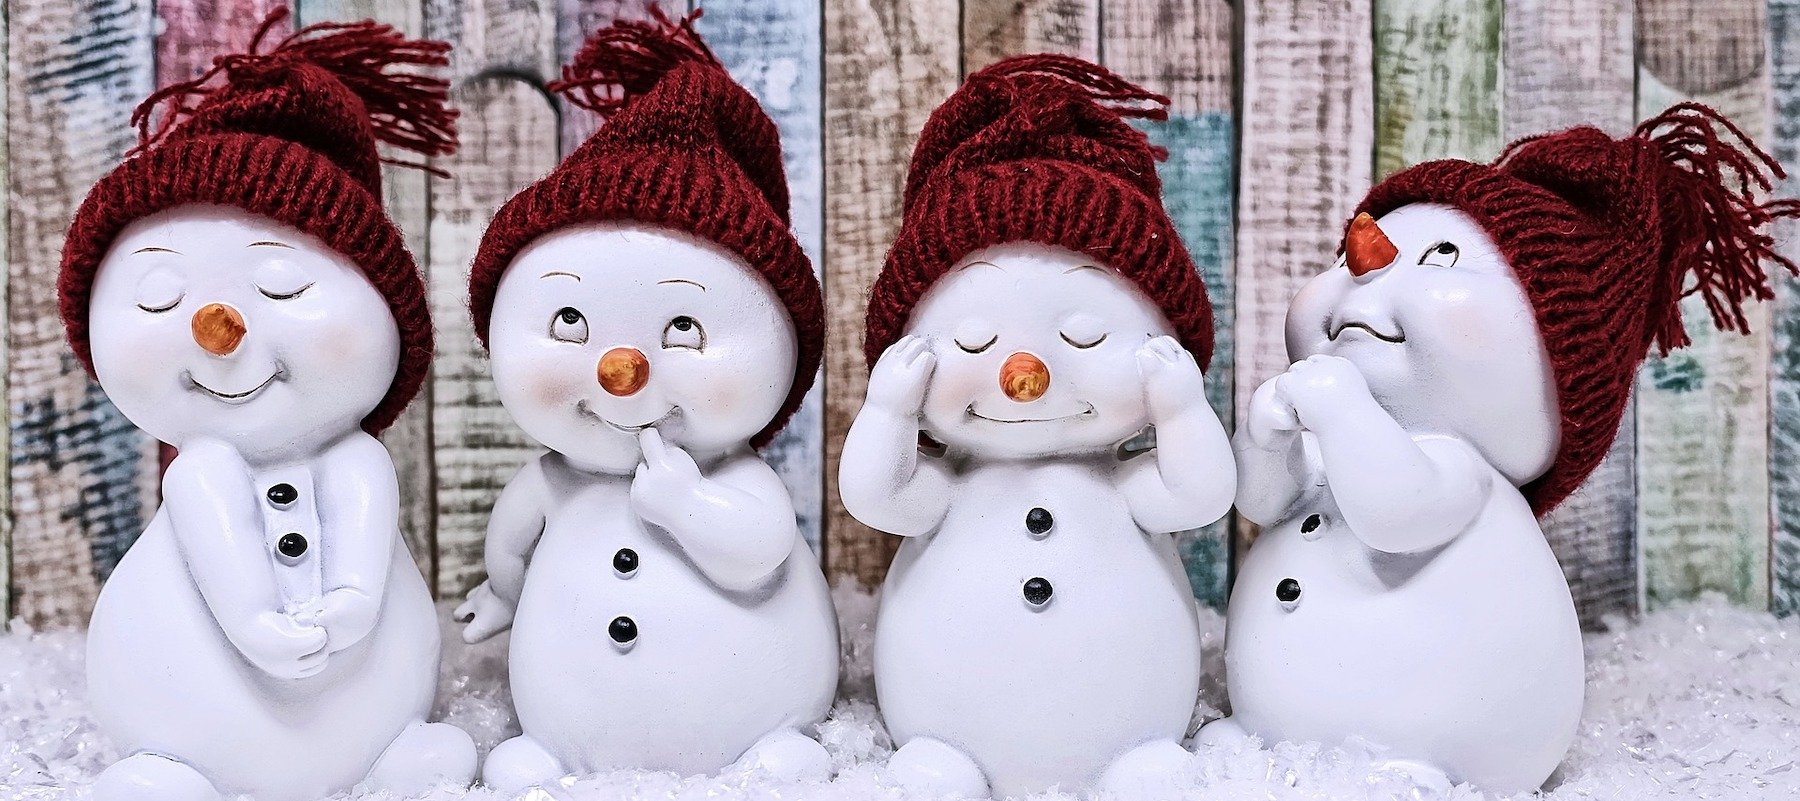 heroic fundraising blog featured image snowman